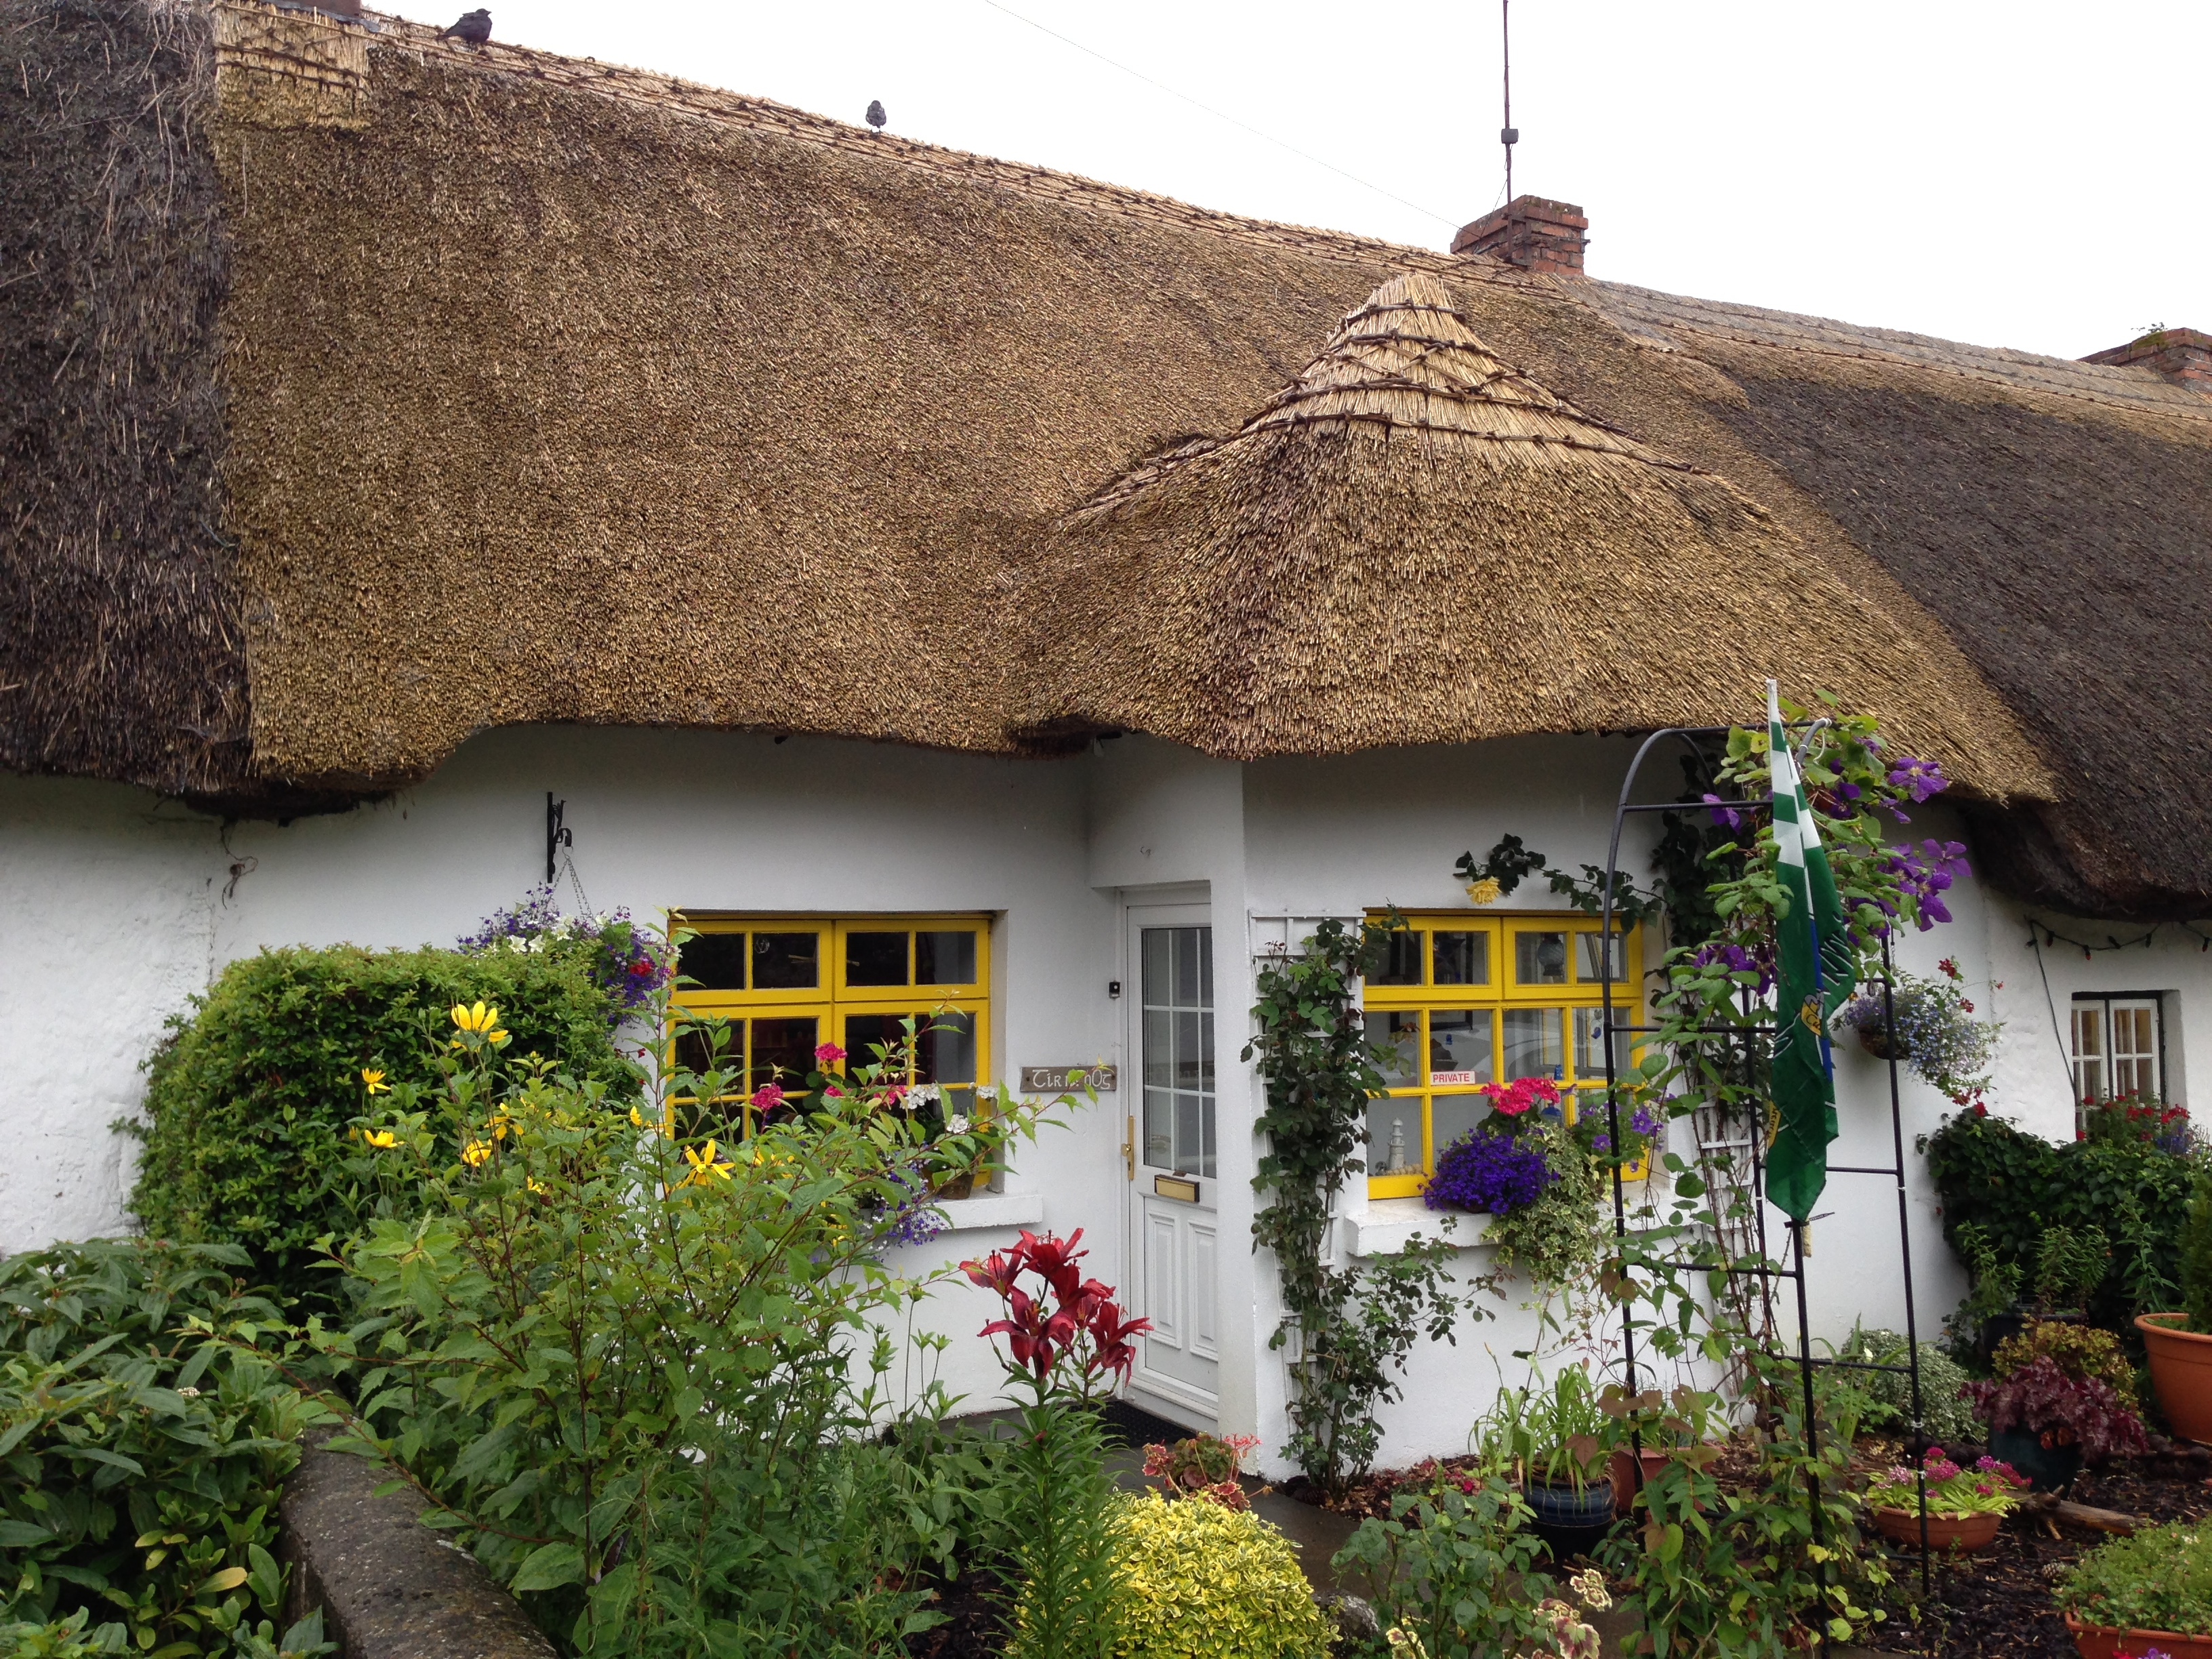 file thatched cottage in adare ireland july. Black Bedroom Furniture Sets. Home Design Ideas